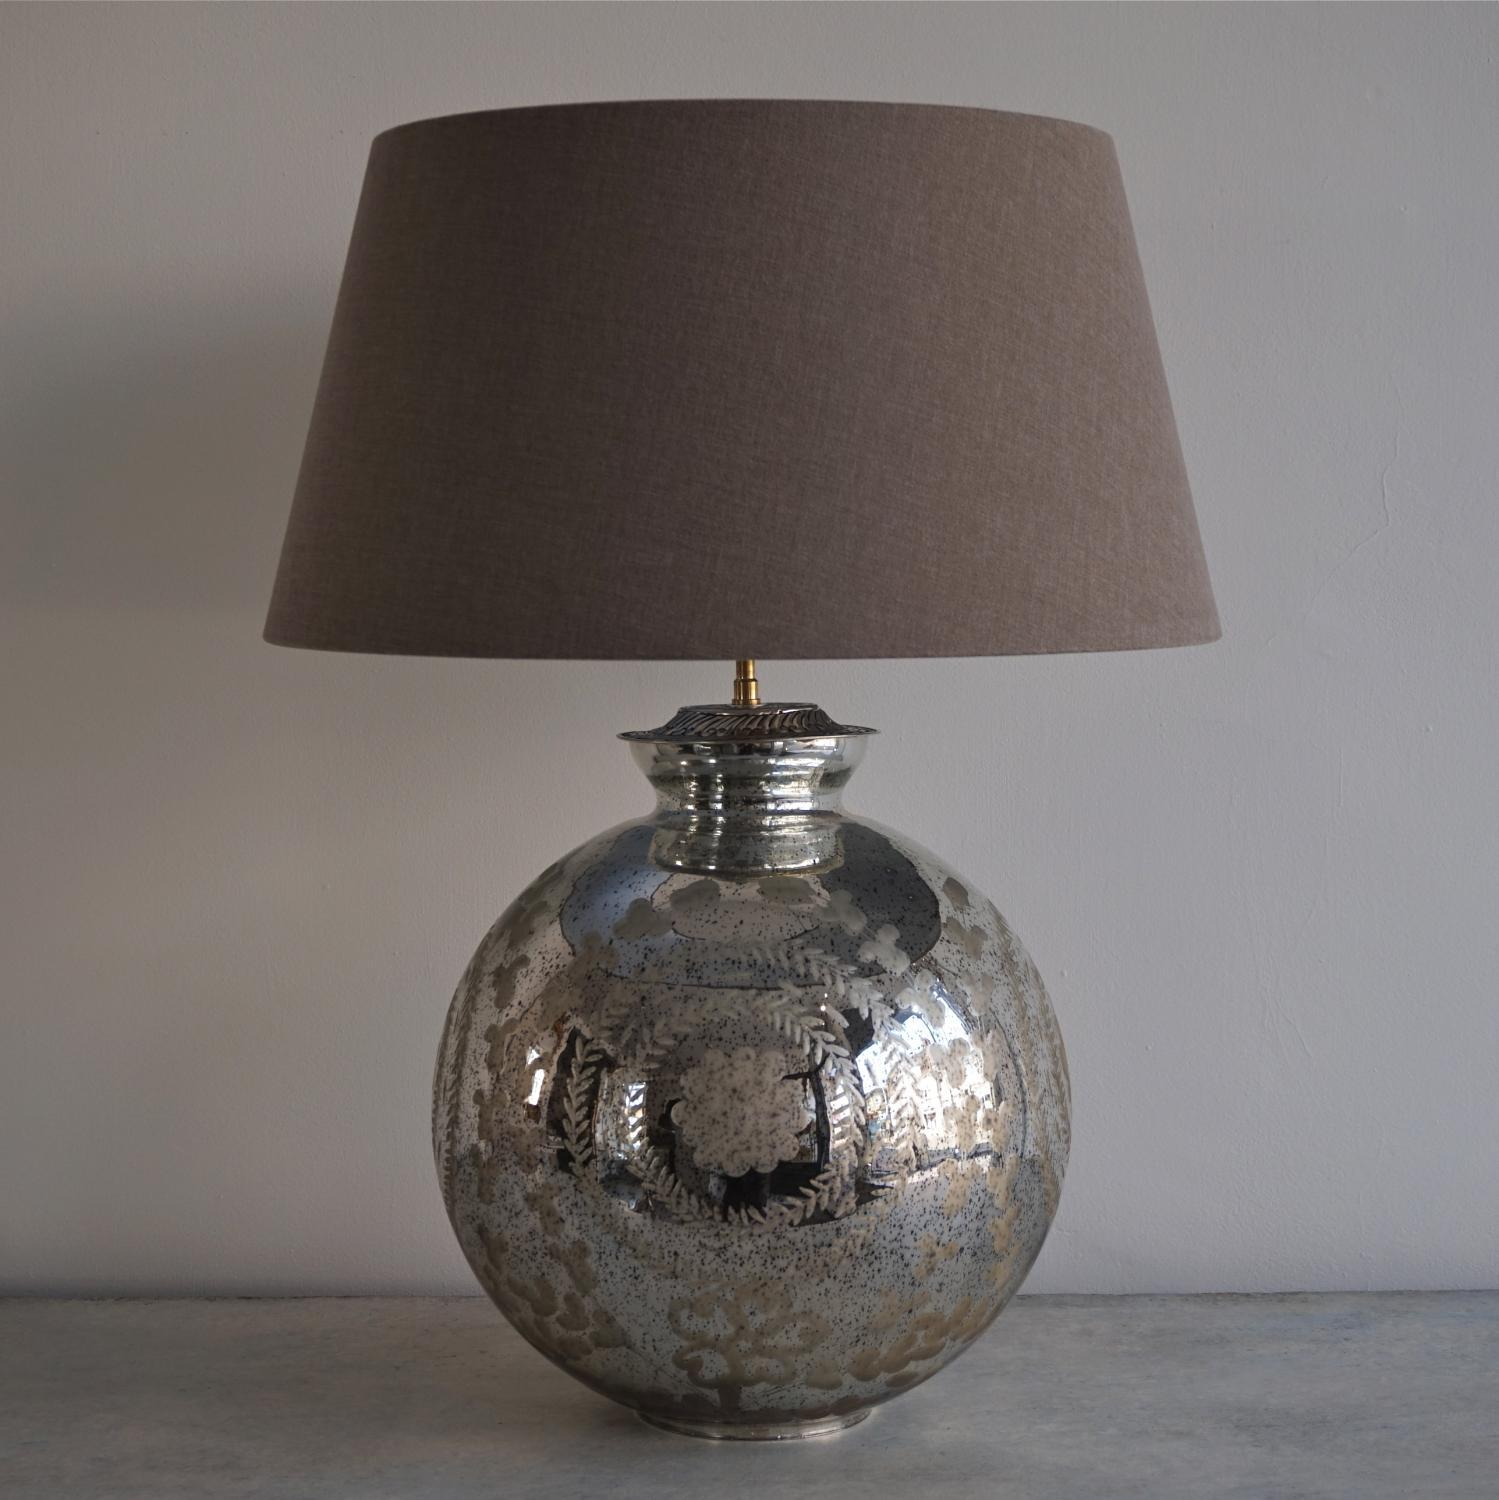 mercury glass table lamps u2013 a nostalgic sparkle for every home - Mercury Glass Table Lamp